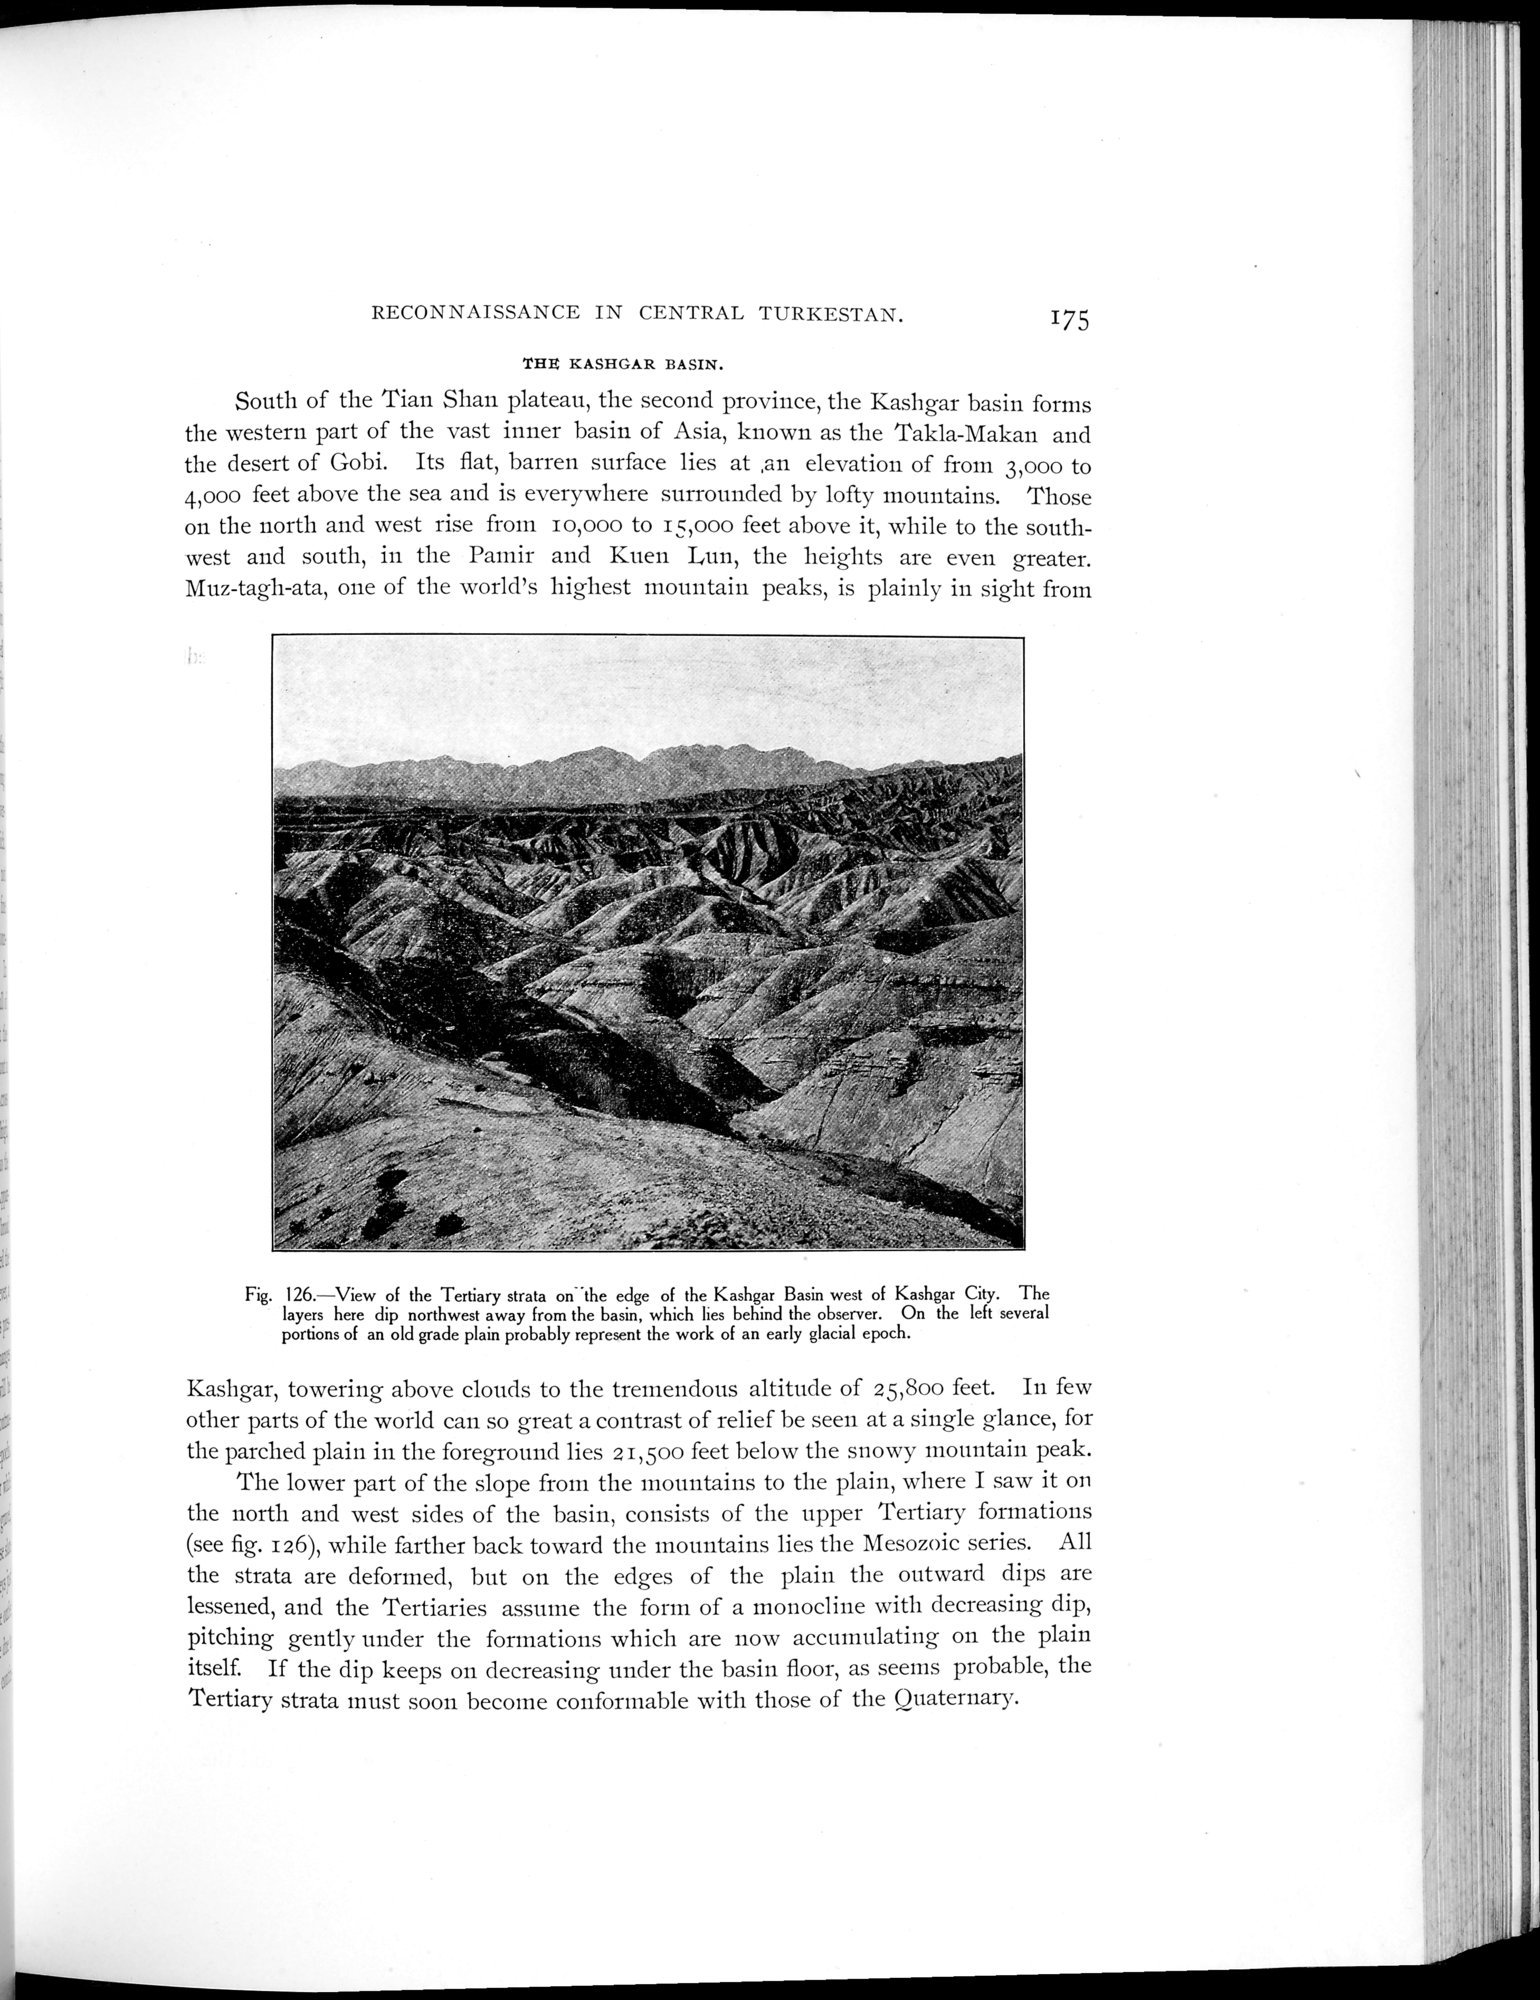 Explorations in Turkestan 1903 : vol.1 / Page 205 (Grayscale High Resolution Image)